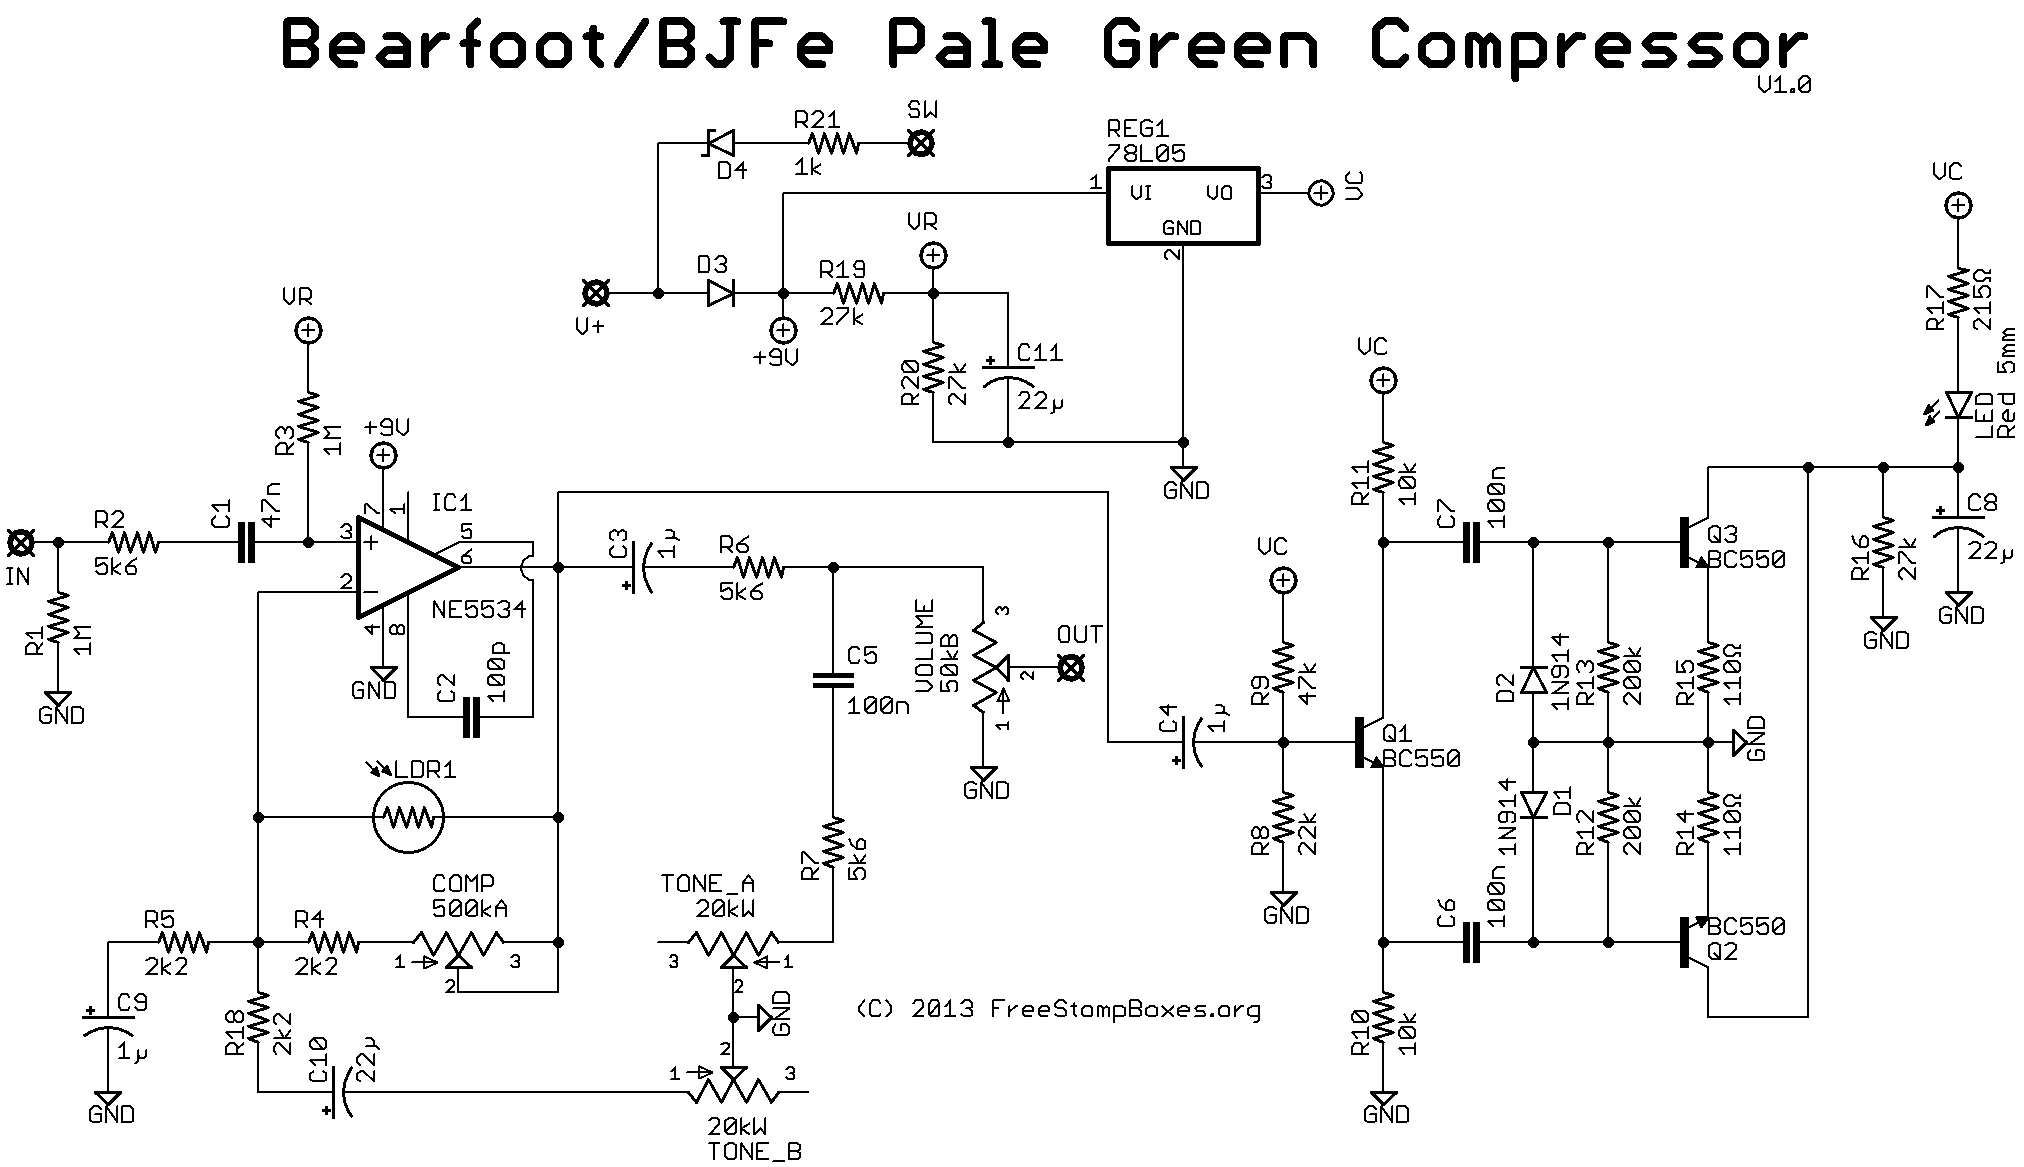 Guitar Compressor Schematic Pictures to Pin on Pinterest